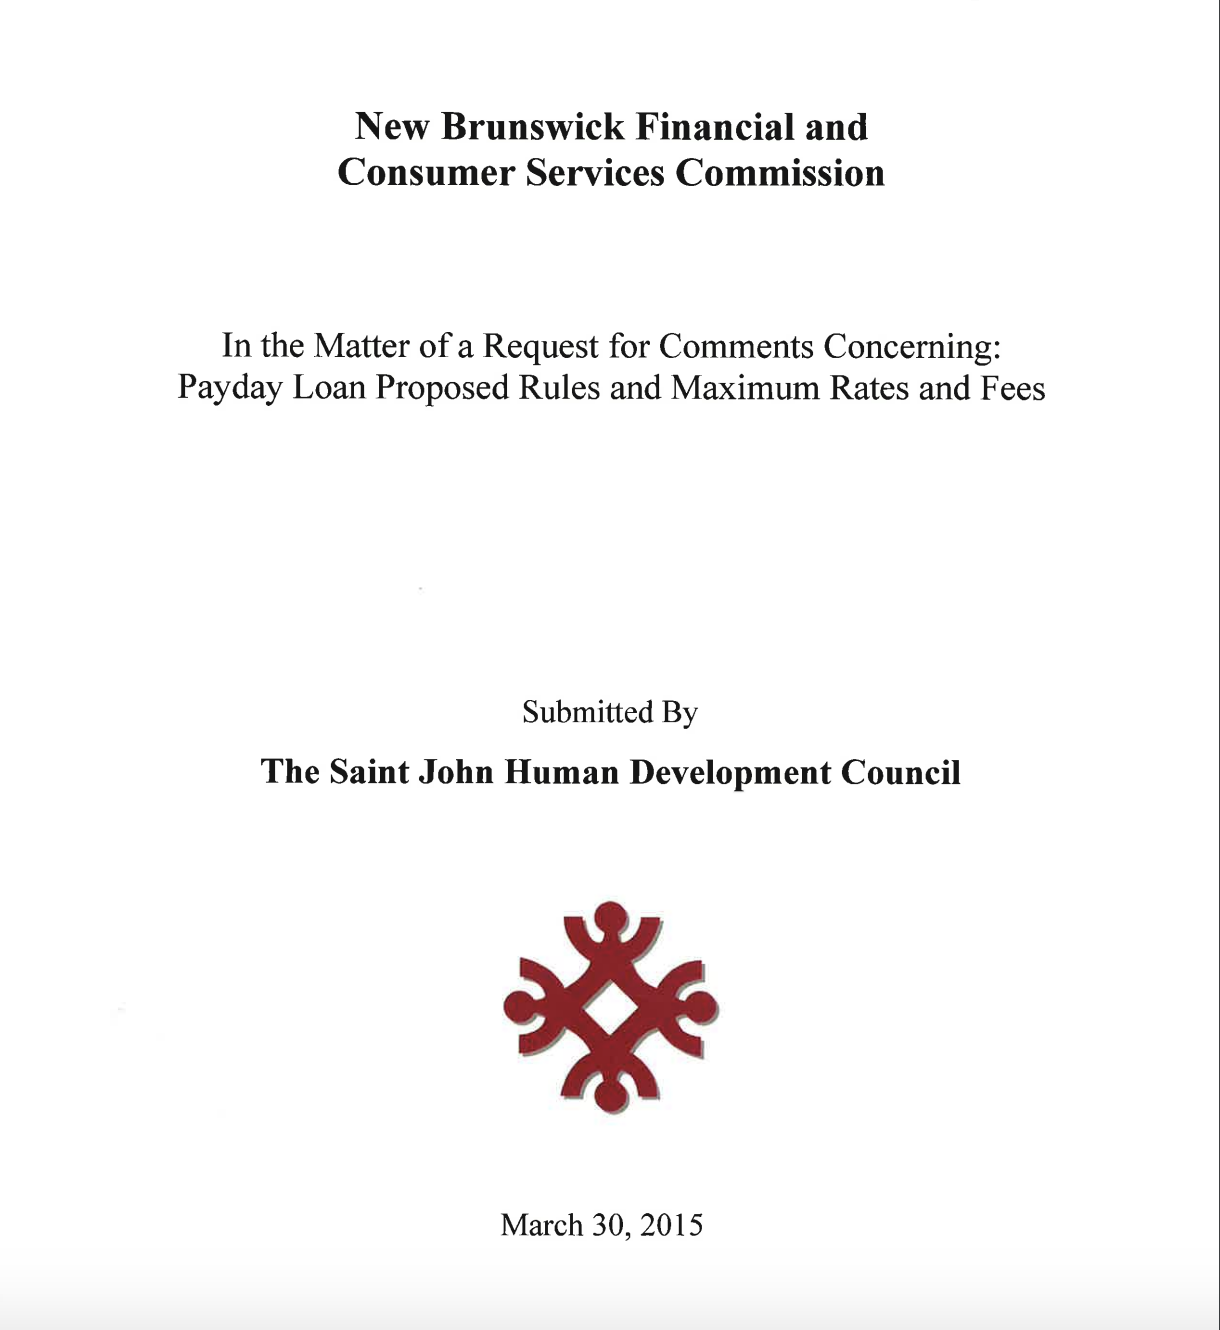 Final Submission to New Brunswick Financial and Consumers Services Commission regarding Pay Day Loans